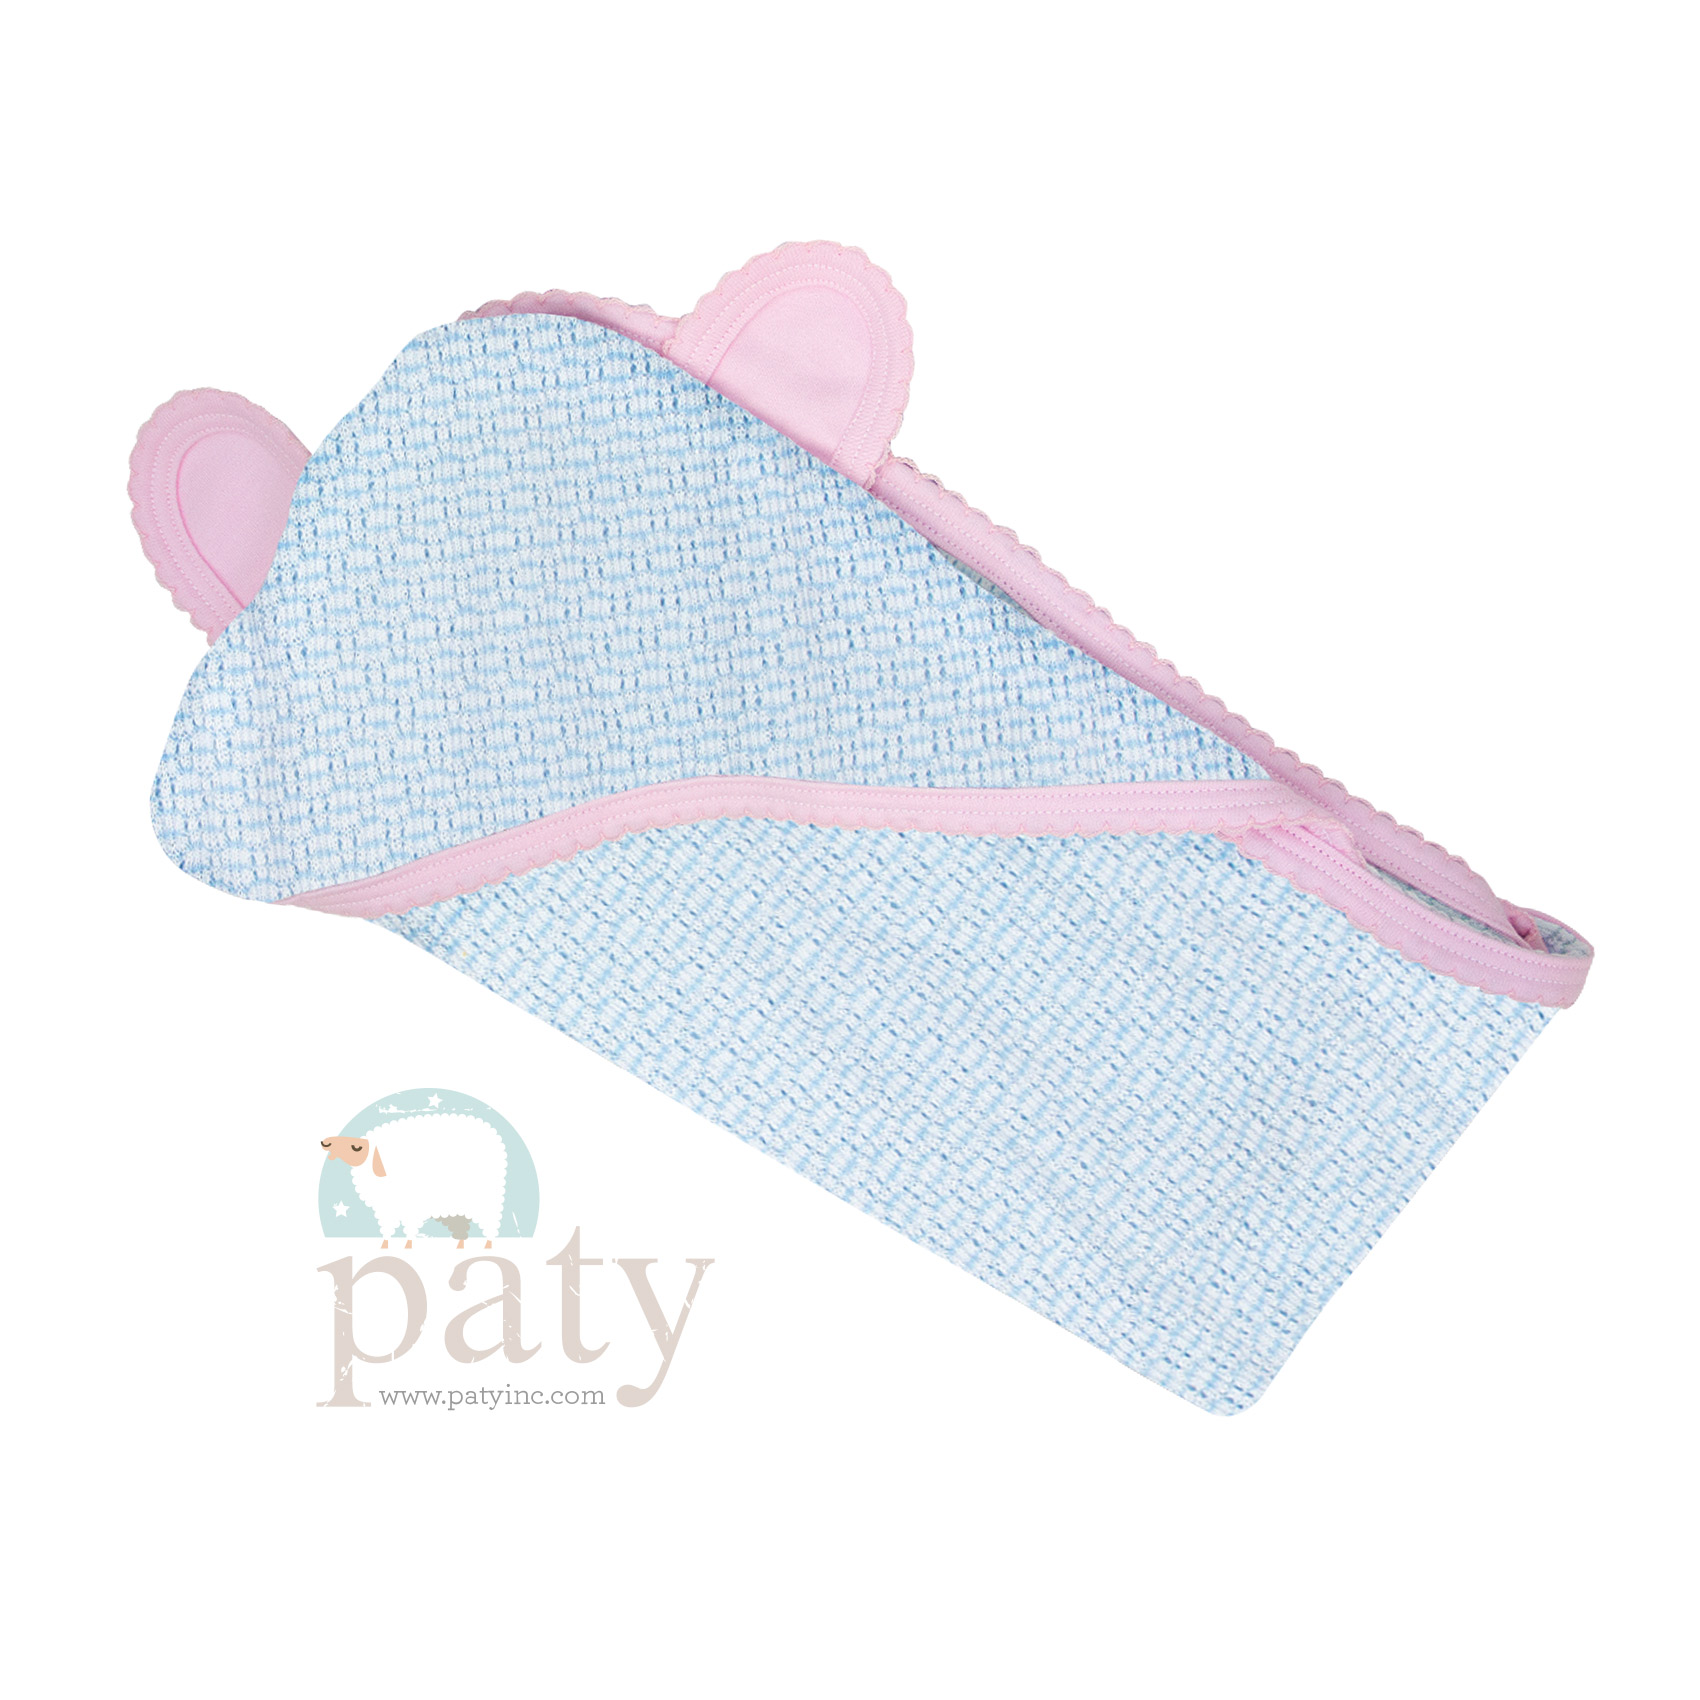 Paty Solid Color Blue with Pink Trim Bear Blanket